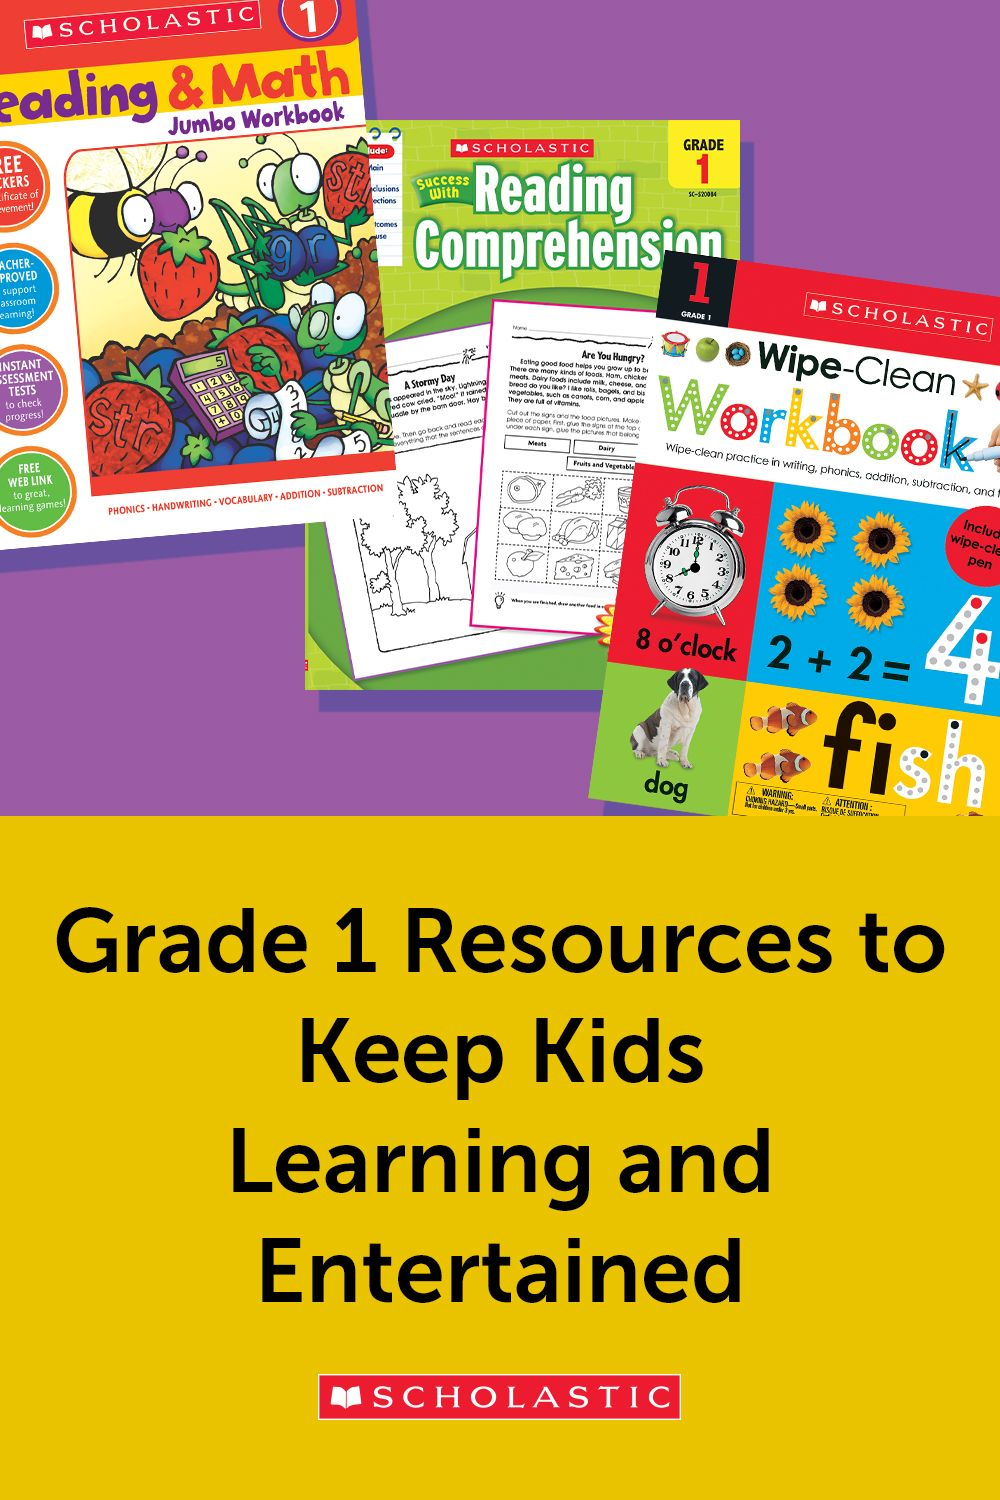 A Collection Of Scholastic Workbooks And Activities To Keep First